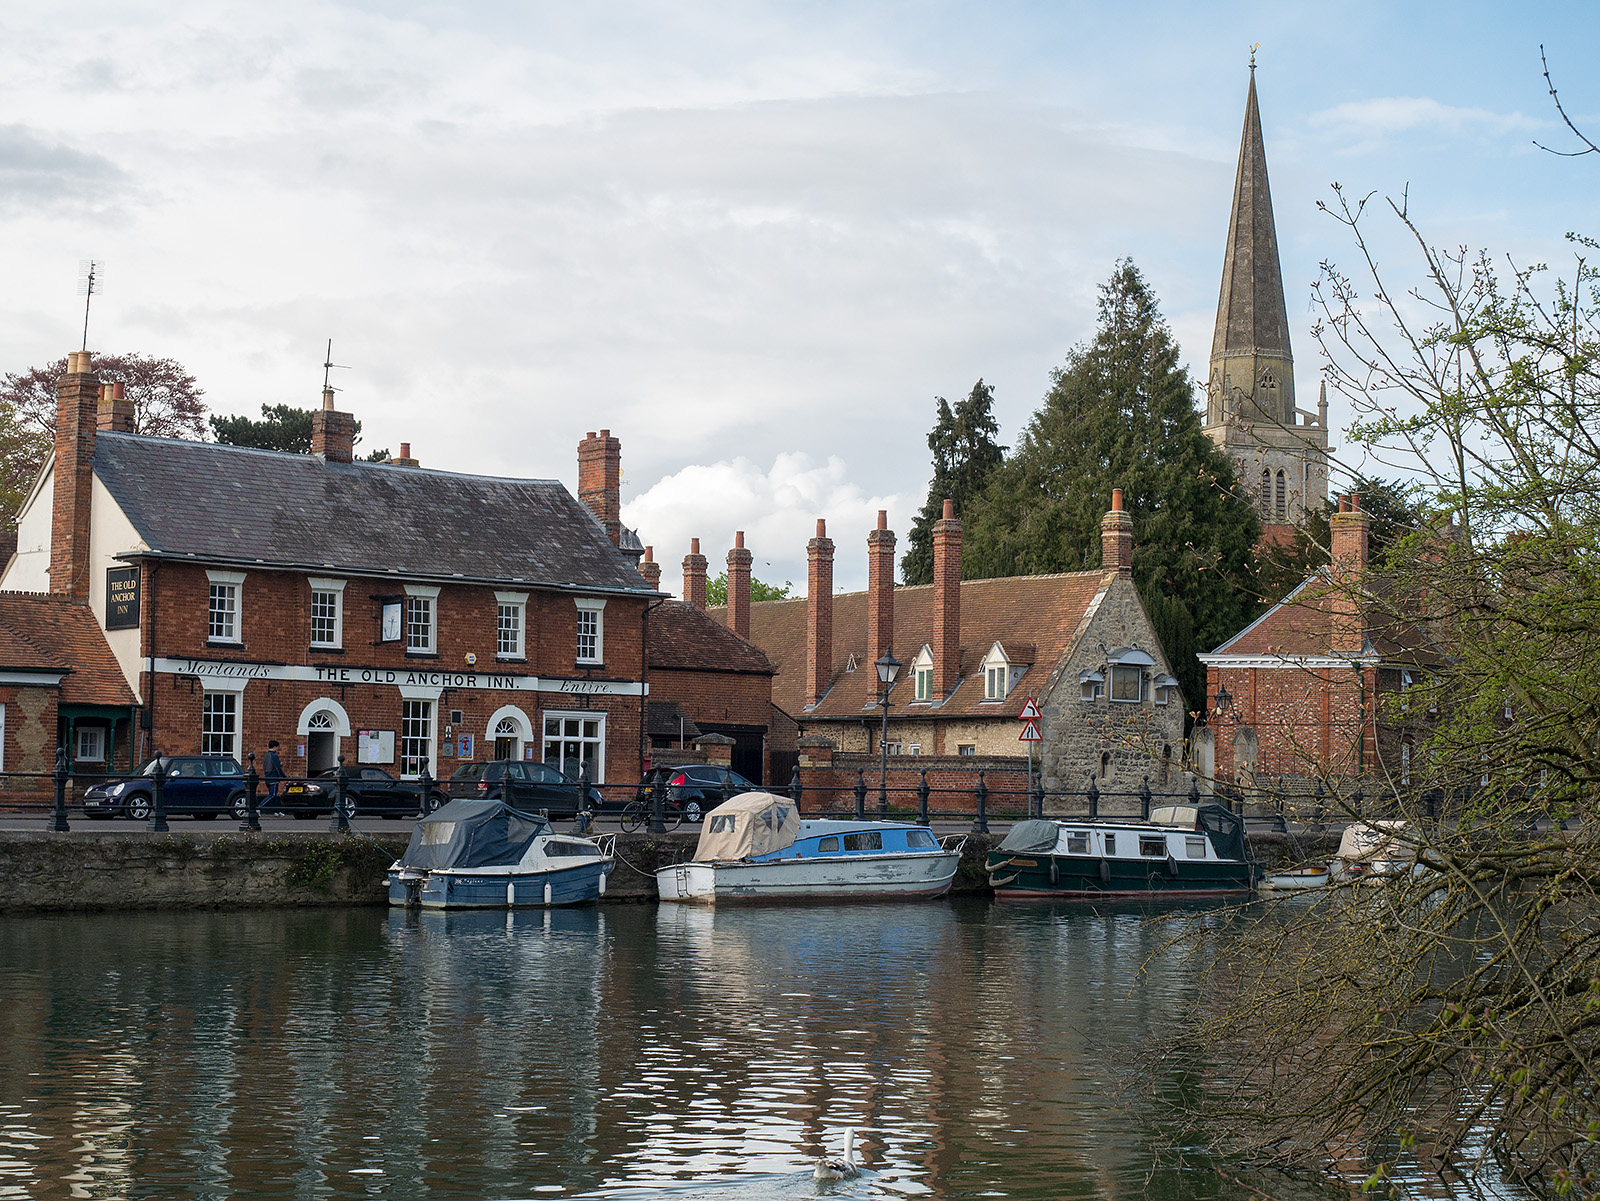 The Old Anchor Inn and the spire at Abingdon